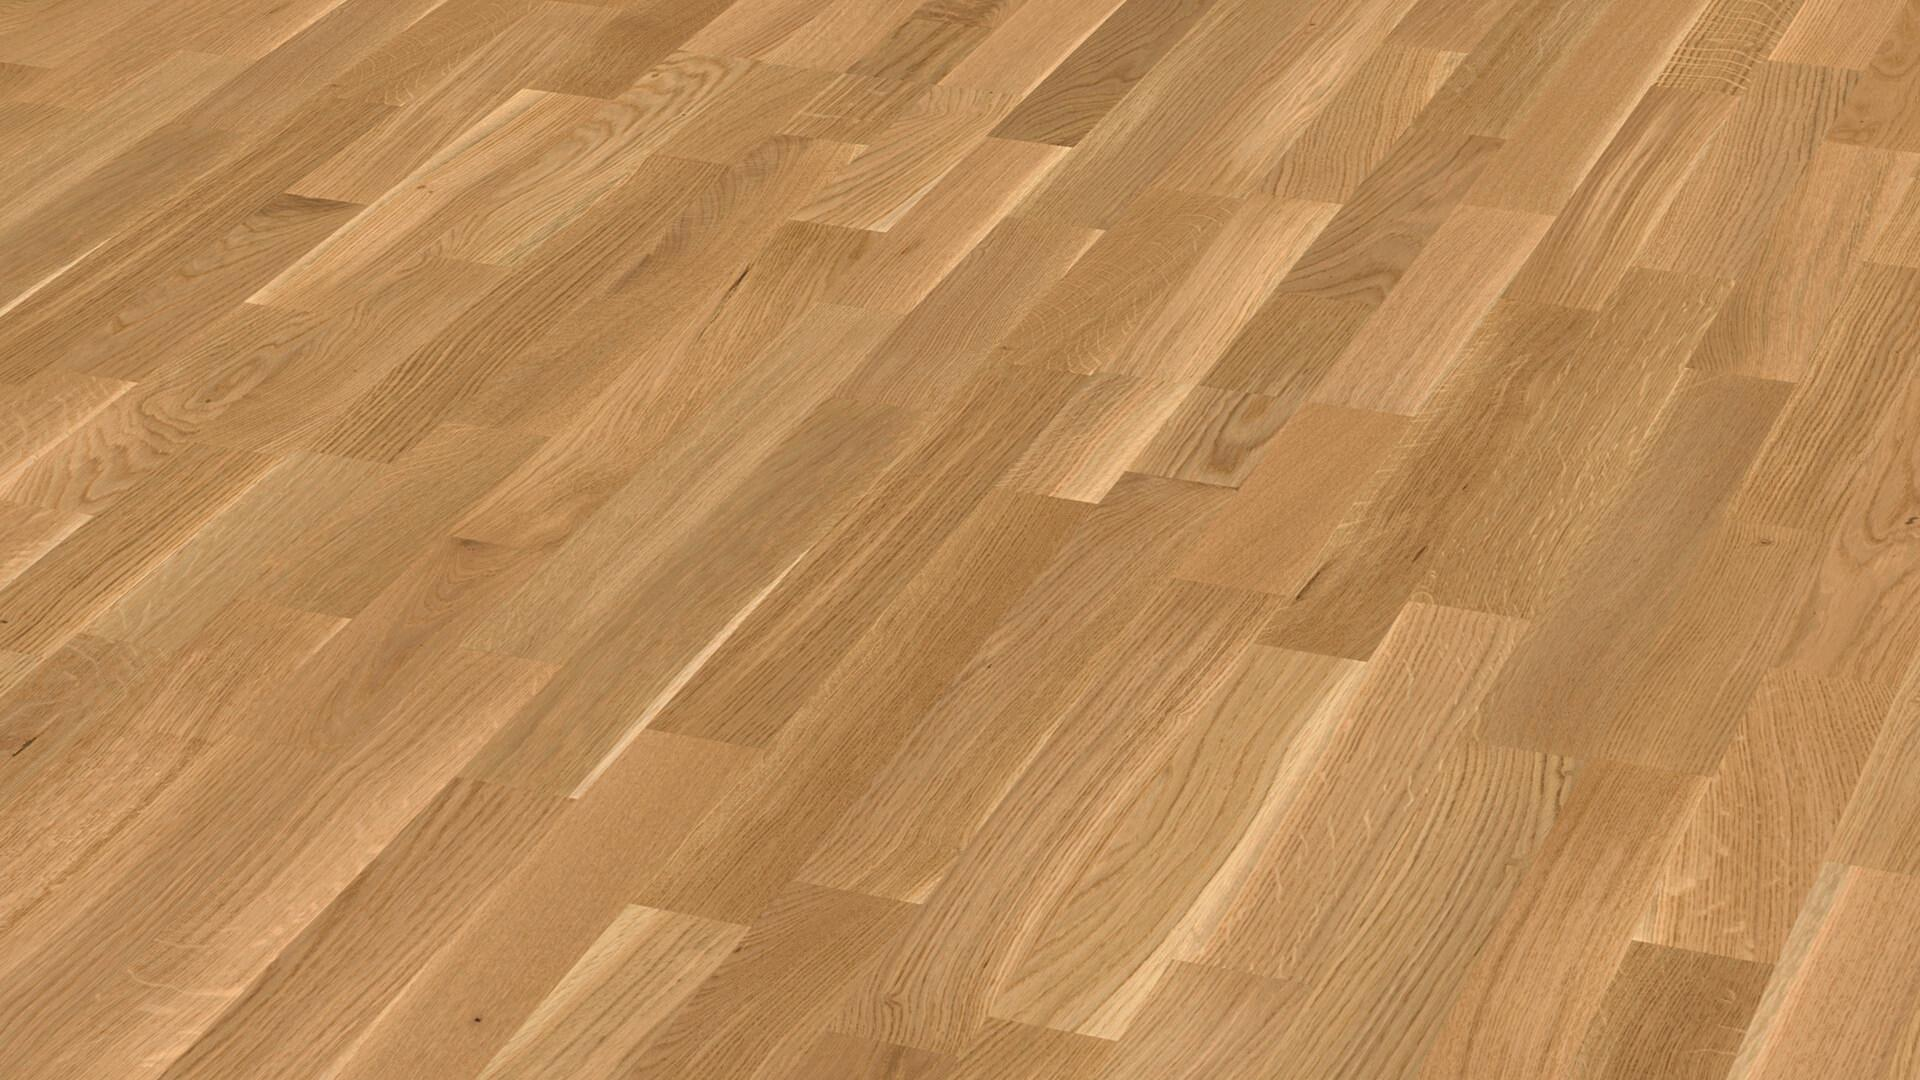 Parquet flooring MeisterParquet. longlife PC 200 Oak lively 903